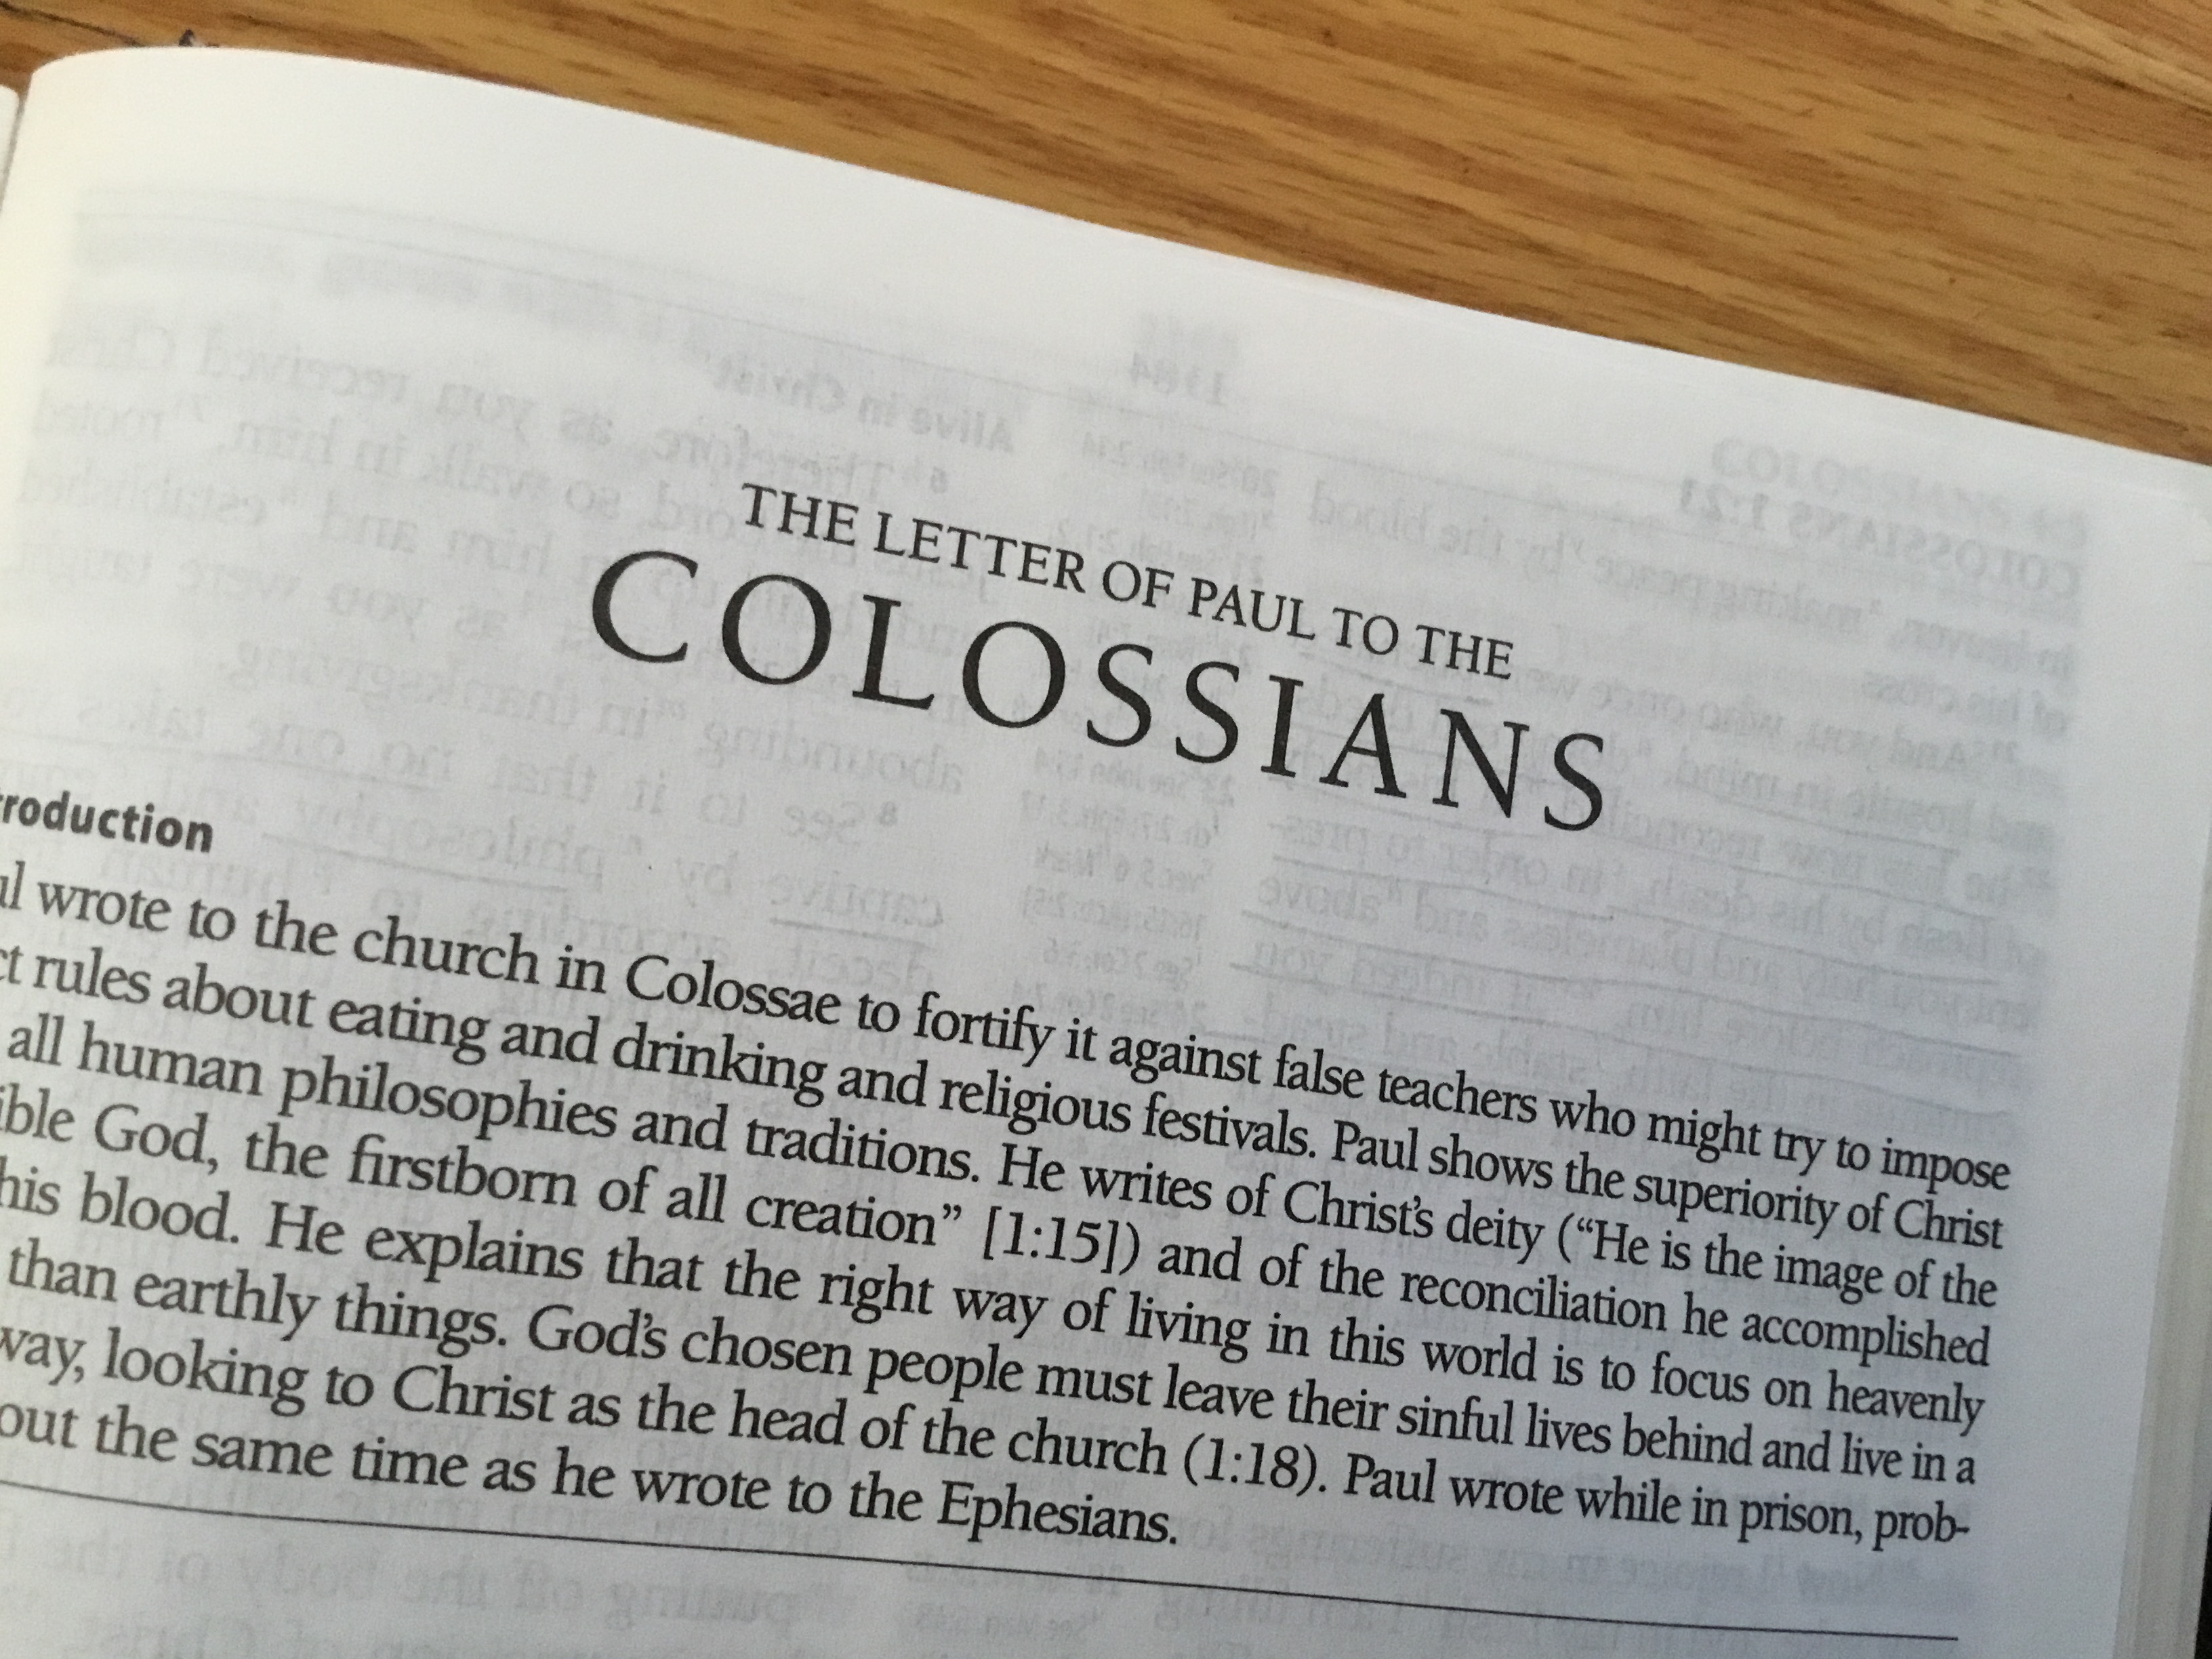 Our sermon series continues…here is Bishop Jane's sermon from February  17th on Colossians 3:6-15